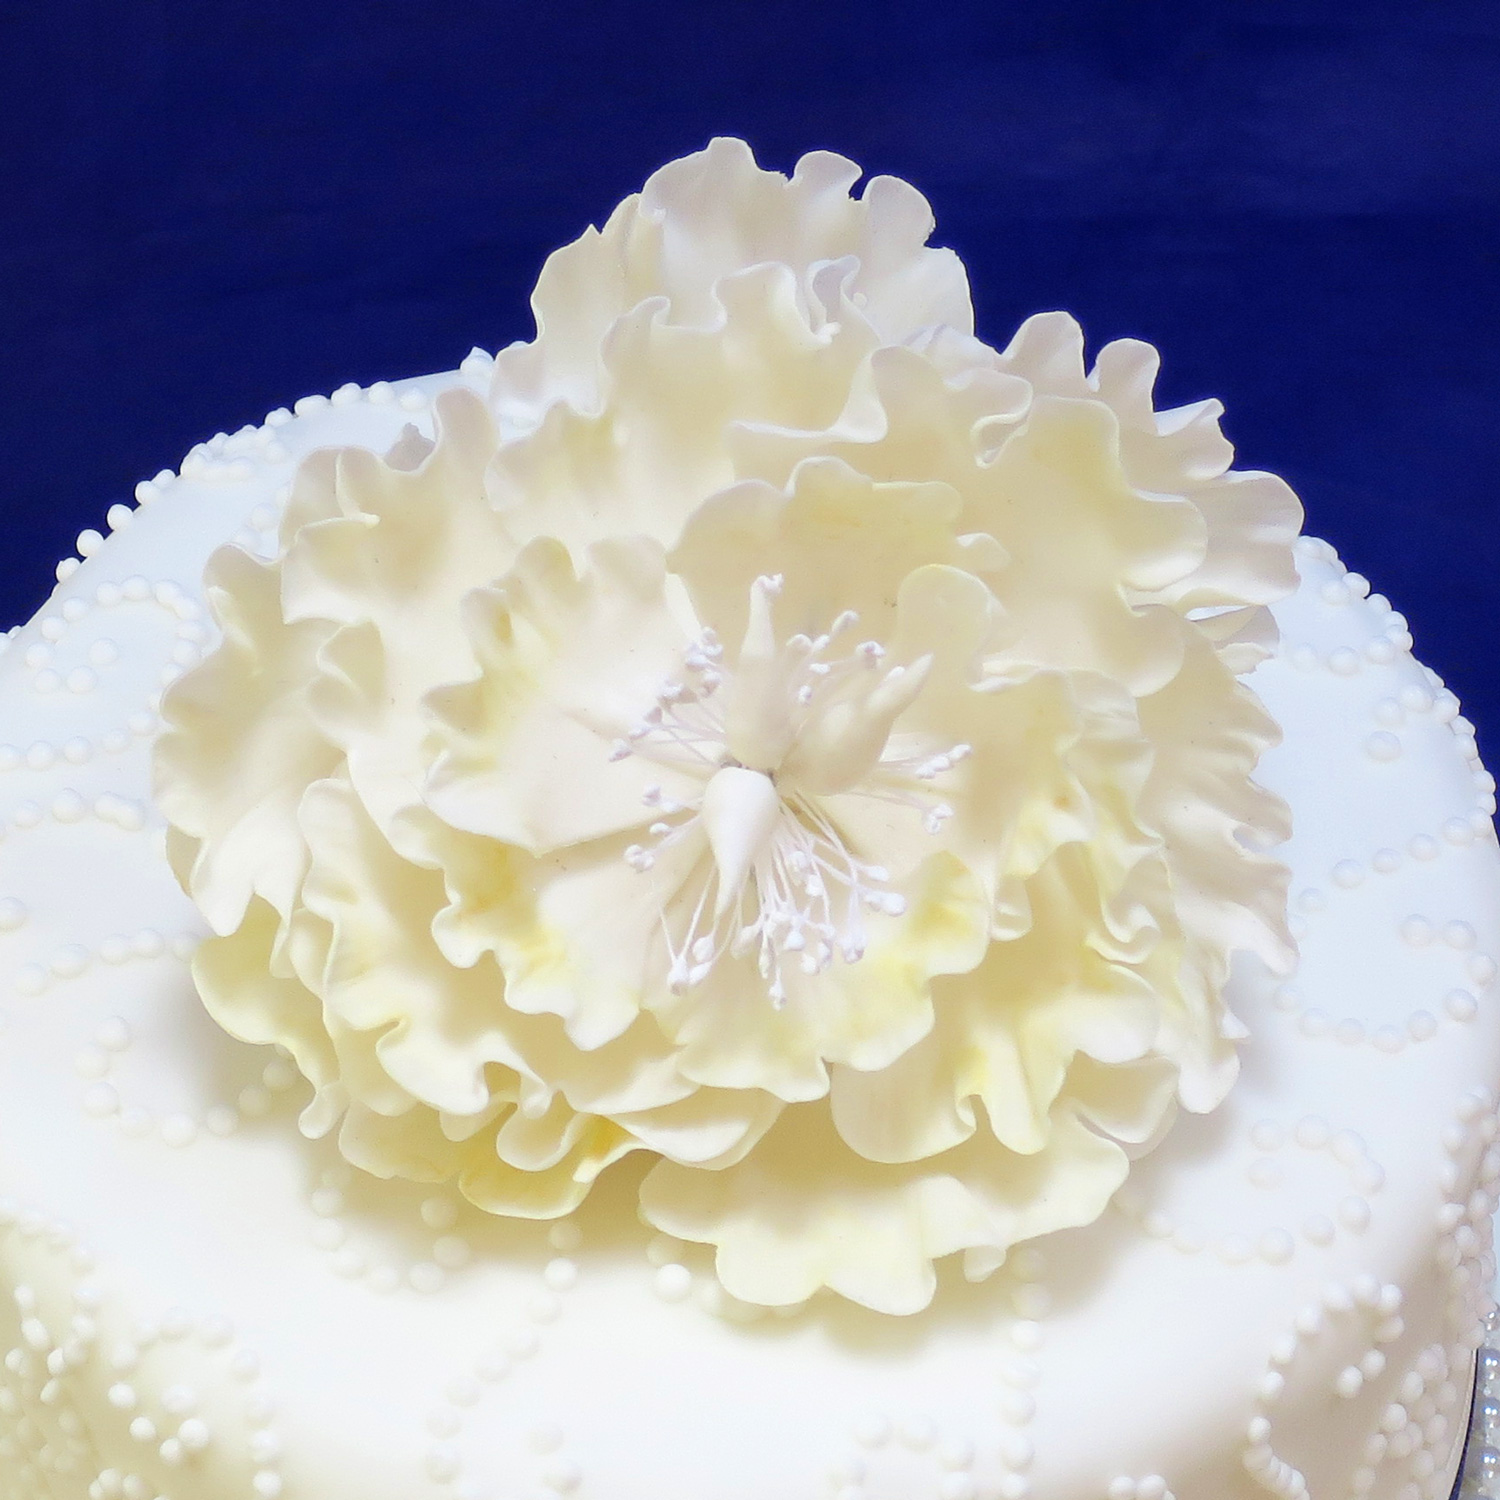 Sugarcraft flowers wedding cakes edinburgh scotland cream peony sugar rose izmirmasajfo